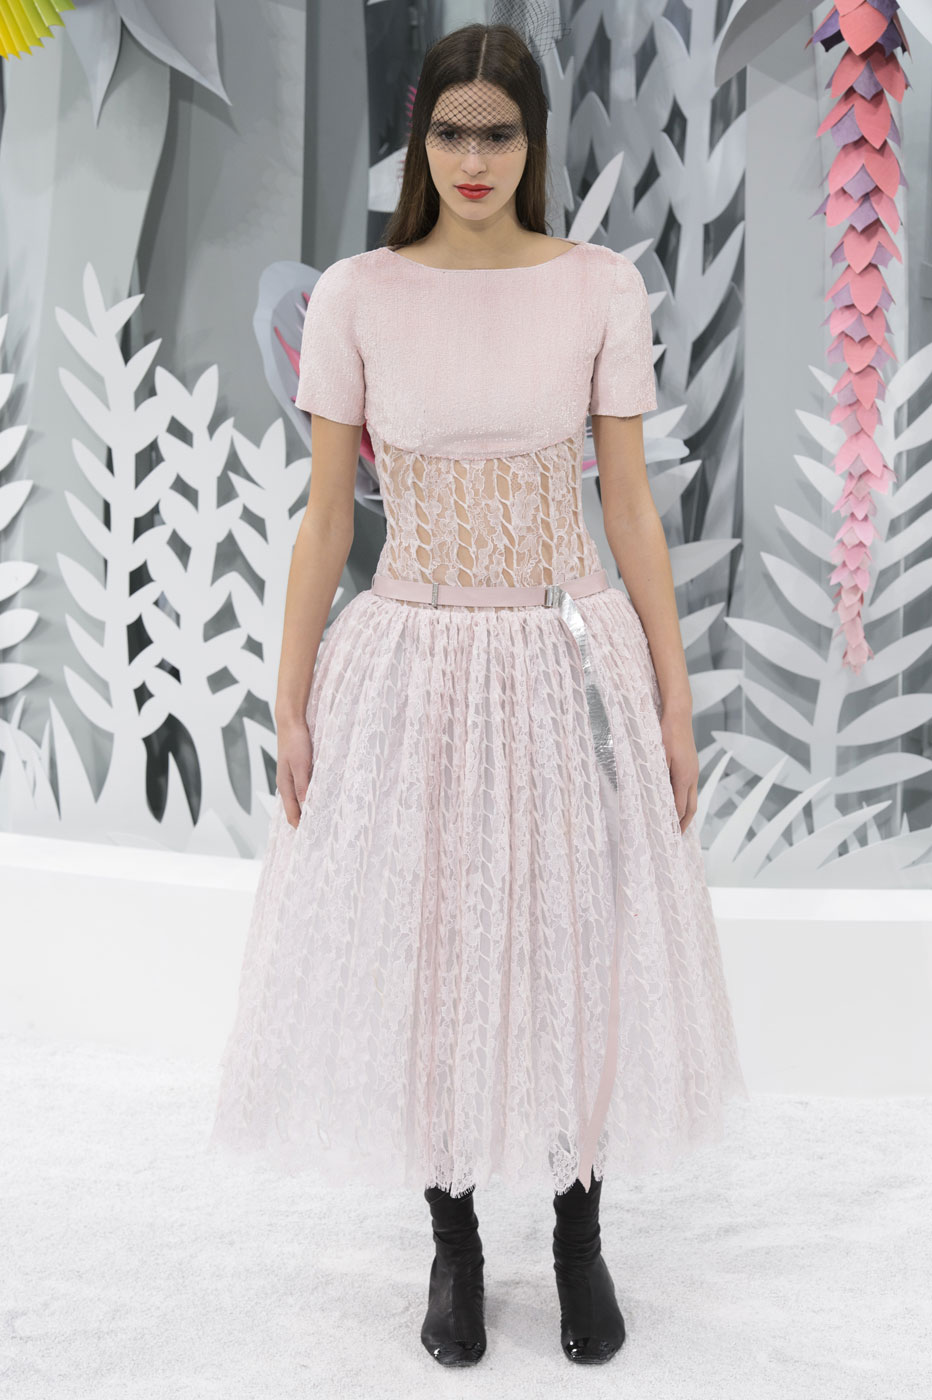 Chanel-fashion-runway-show-haute-couture-paris-spring-summer-2015-the-impression-143